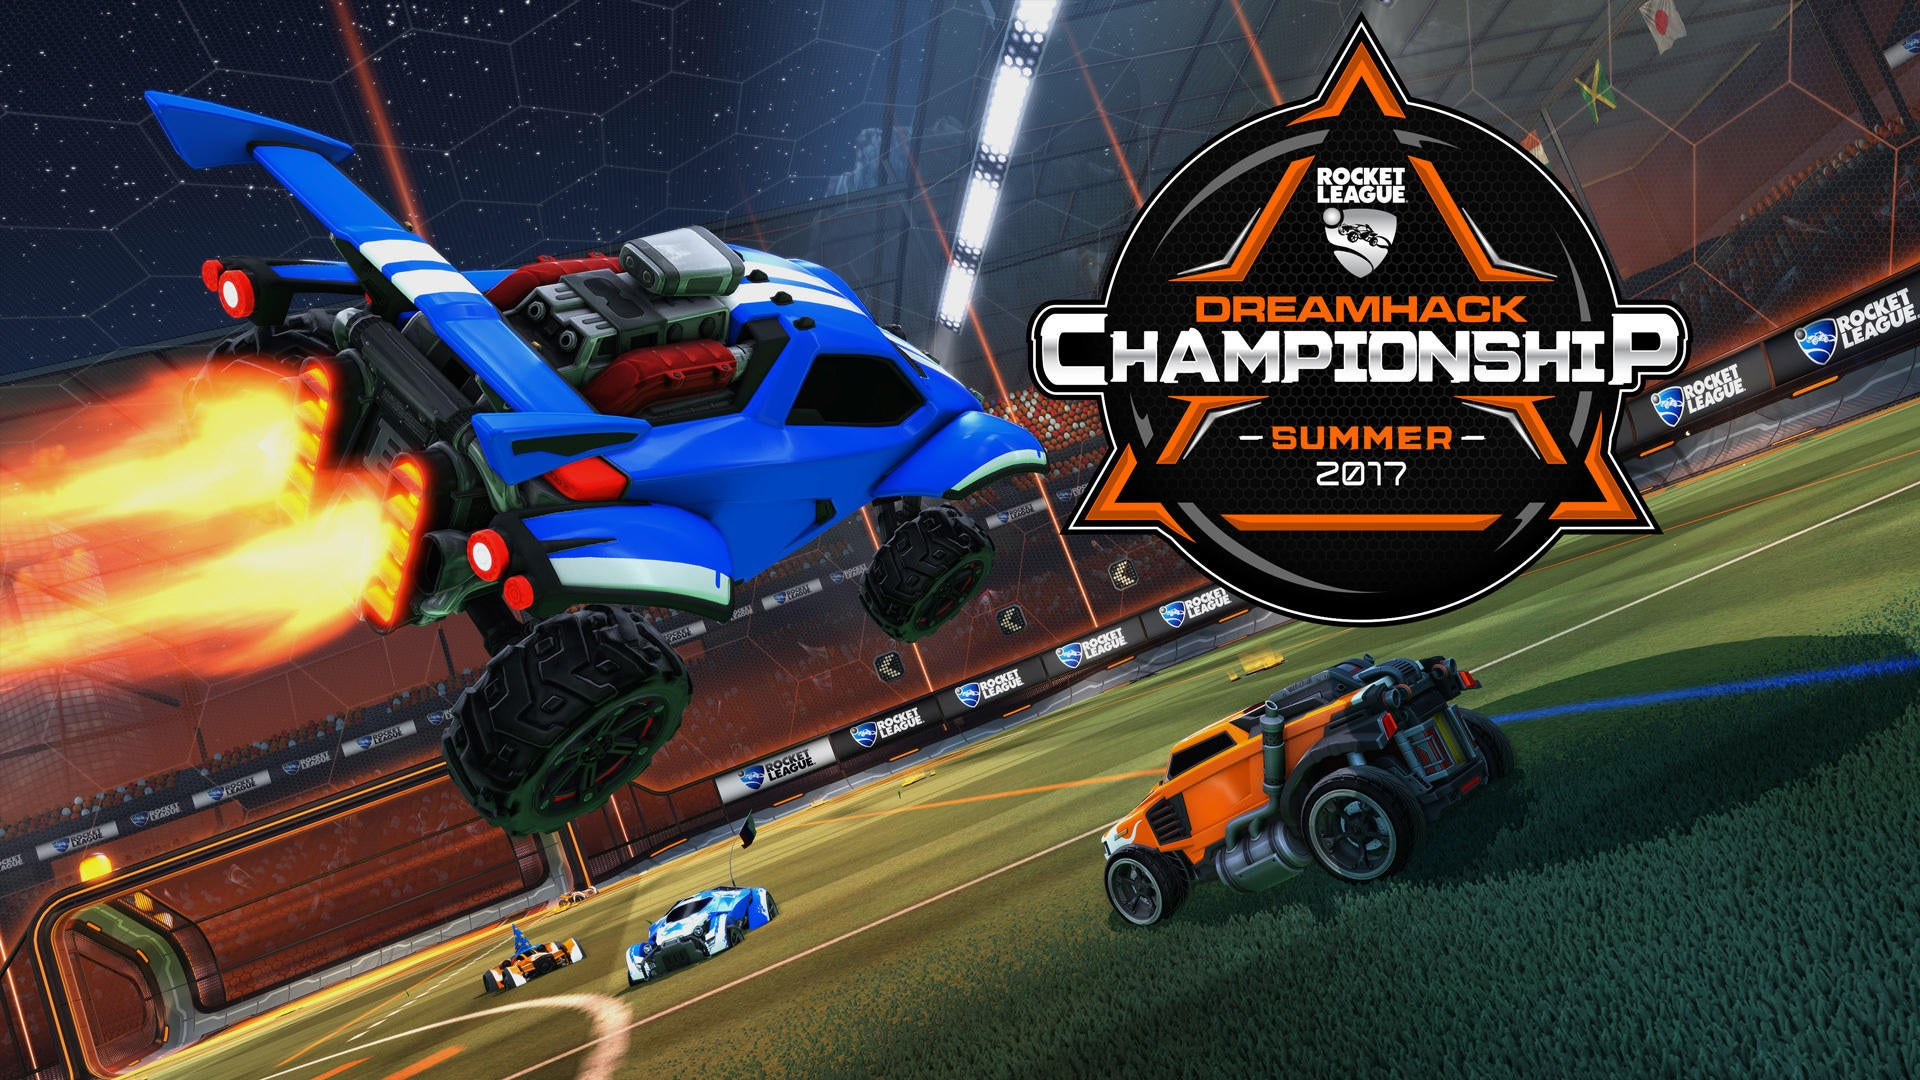 Rocket League Brings $100,000 in Prize Pools to DreamHack This Summer Image